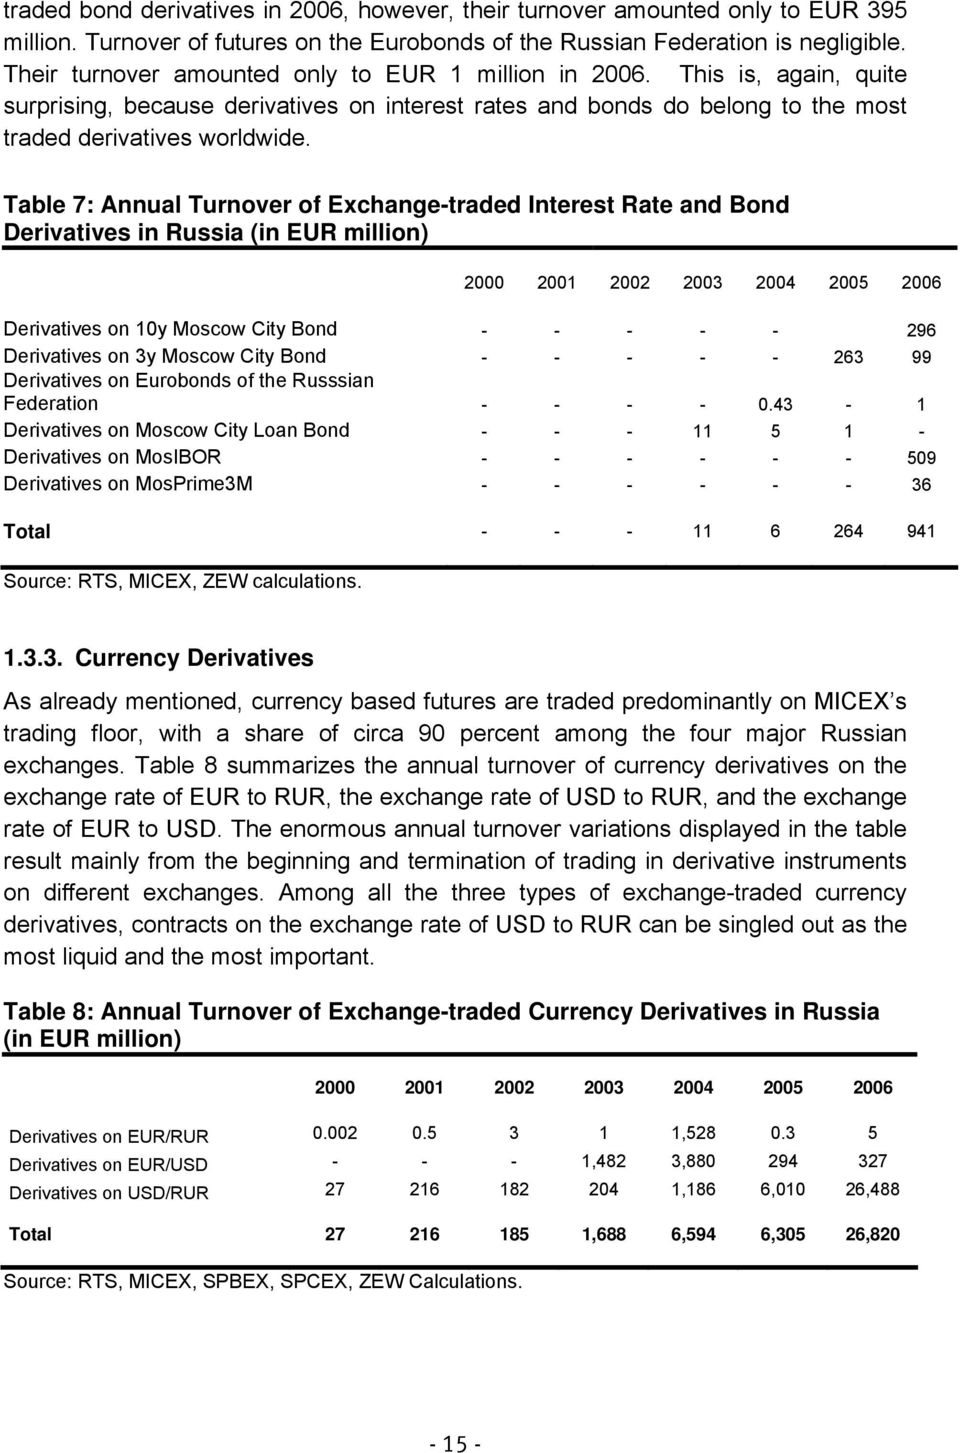 Table 7: Annual Turnover of Exchange-traded Interest Rate and Bond Derivatives in Russia (in EUR million) 2000 2001 2002 2003 2004 2005 2006 Derivatives on 10y Moscow City Bond - - - - - 296